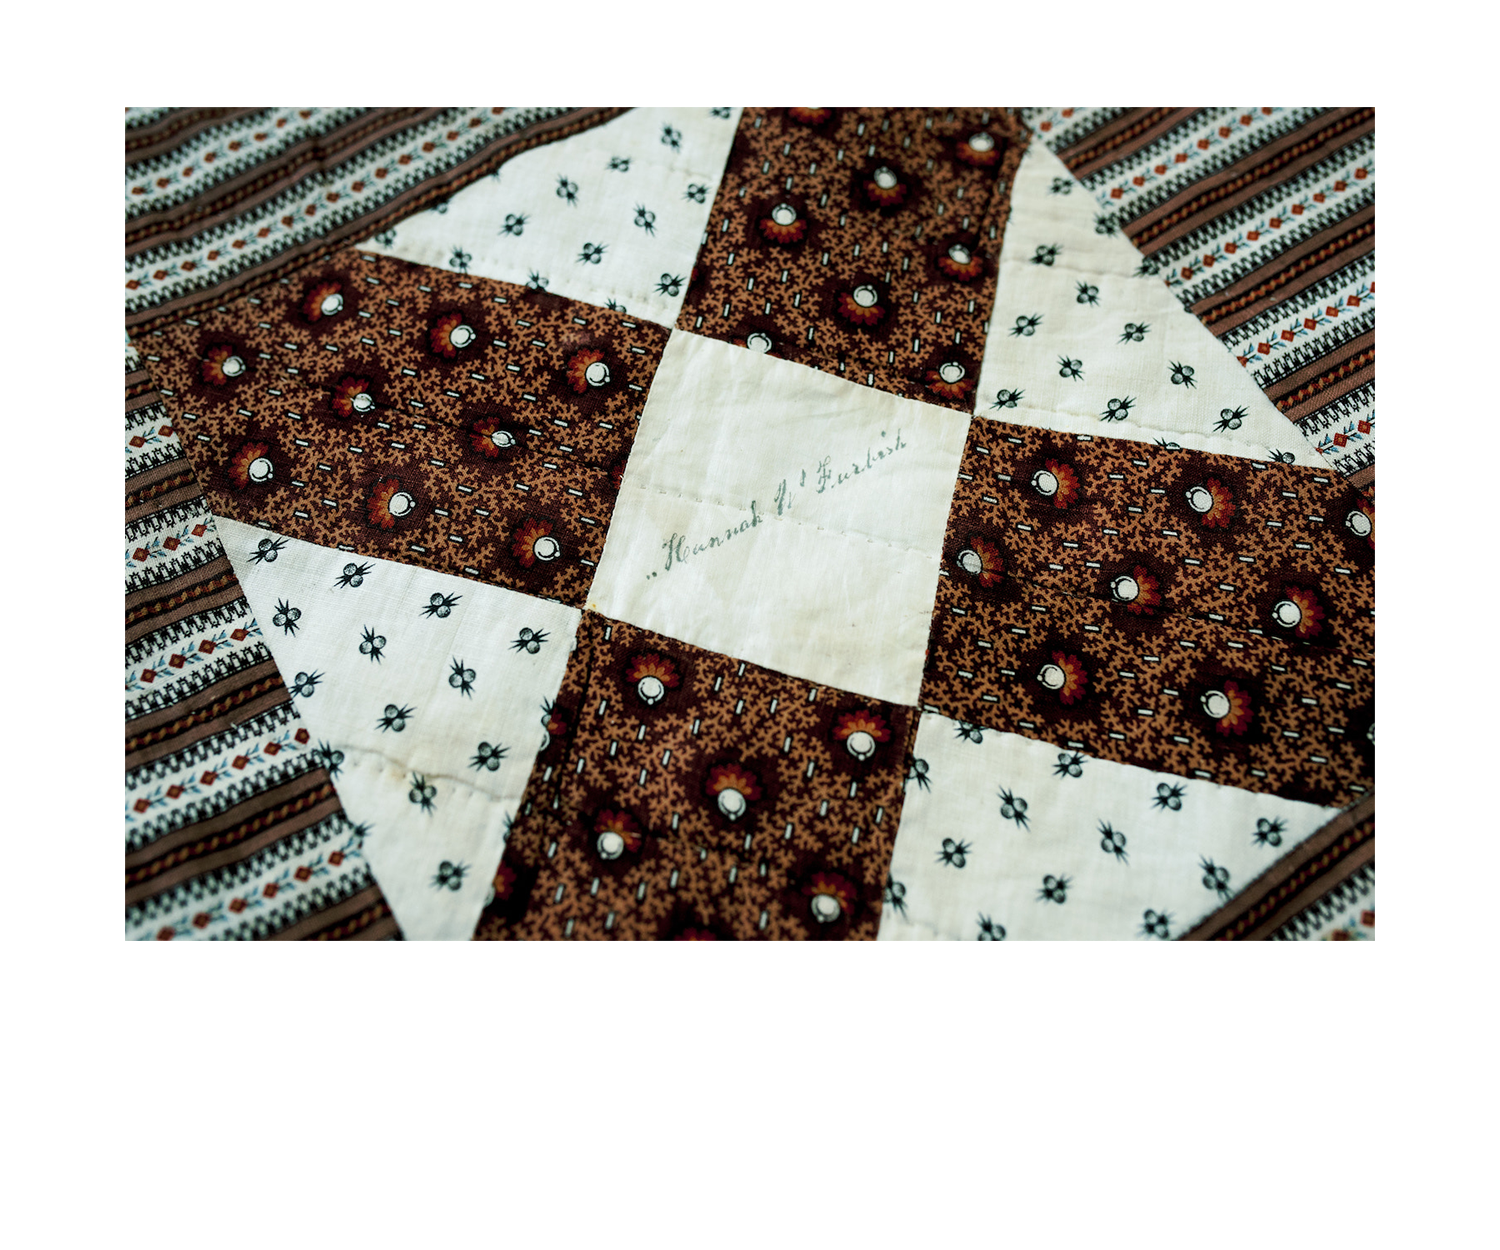 - Signature quilts (also known as friendship quilts) became popular in the 19th c. as treasured objects to commemorate loved ones or events. This example is dated to the mid 1800's and includes hand signed signatures along with rare natural color printed 19th c. calico and paisley textiles individually pieced together.